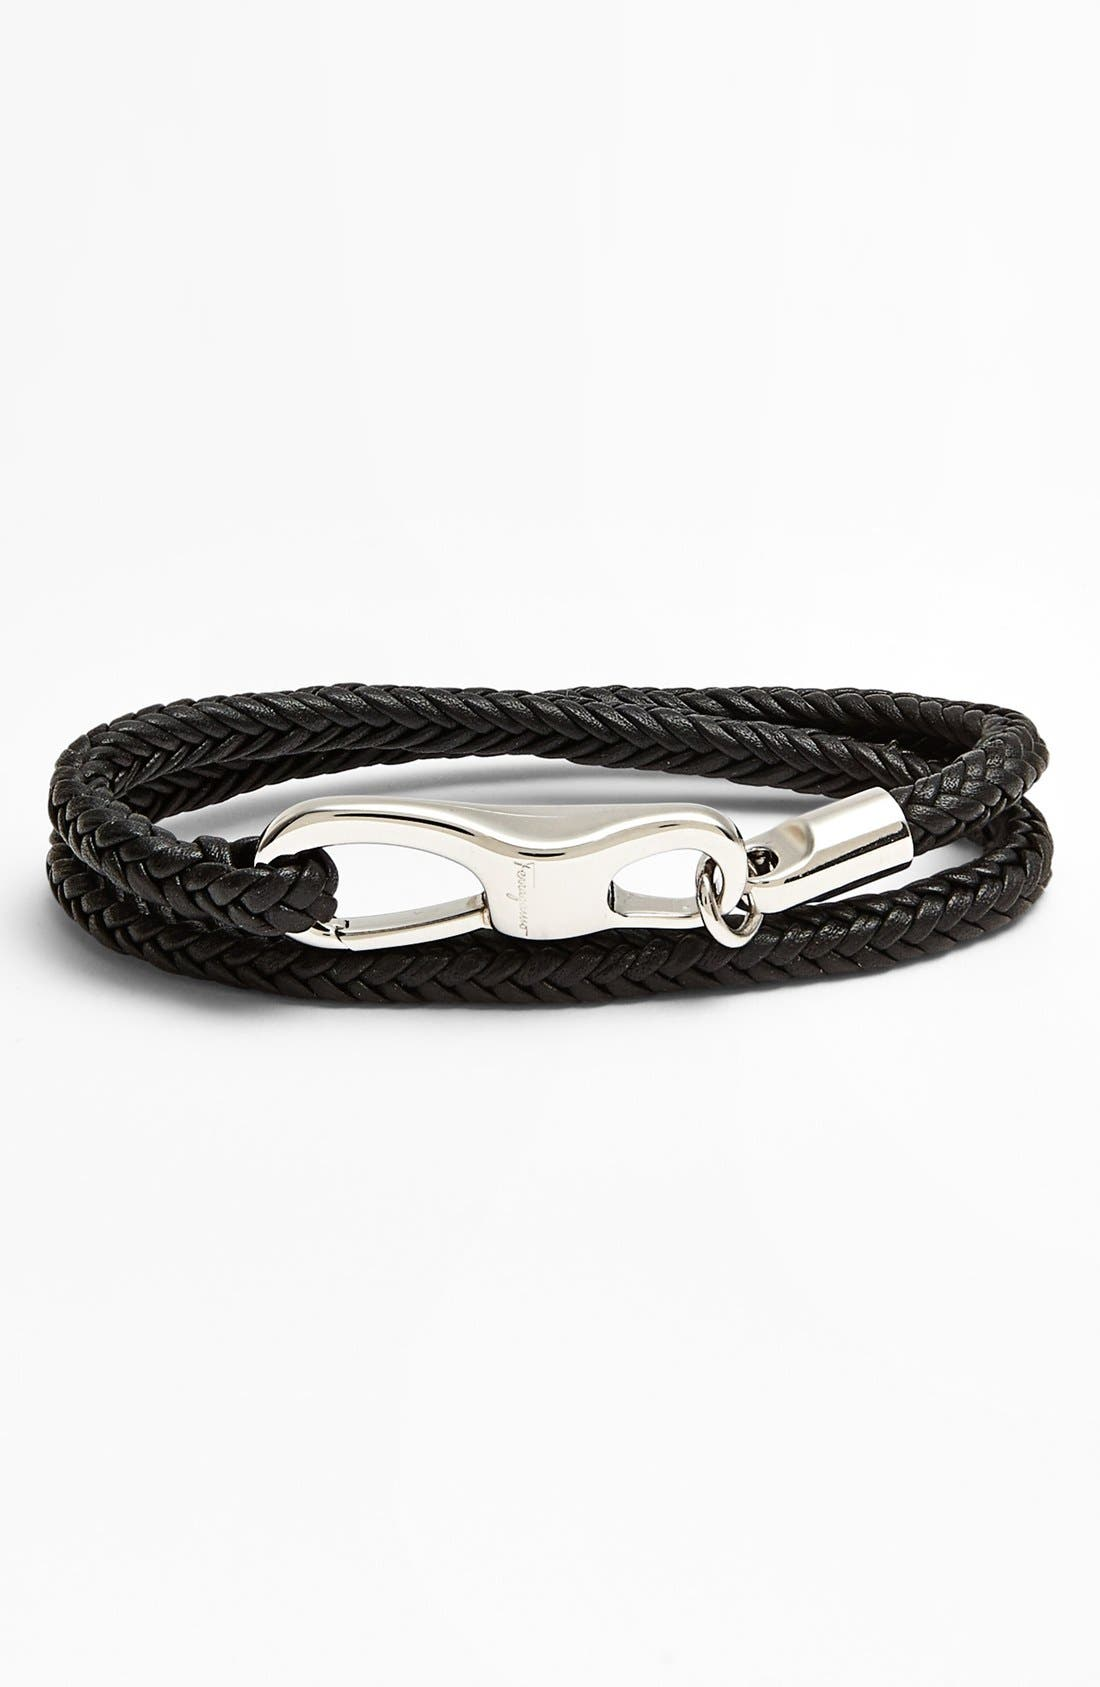 Main Image - Salvatore Ferragamo Braided Leather Bracelet